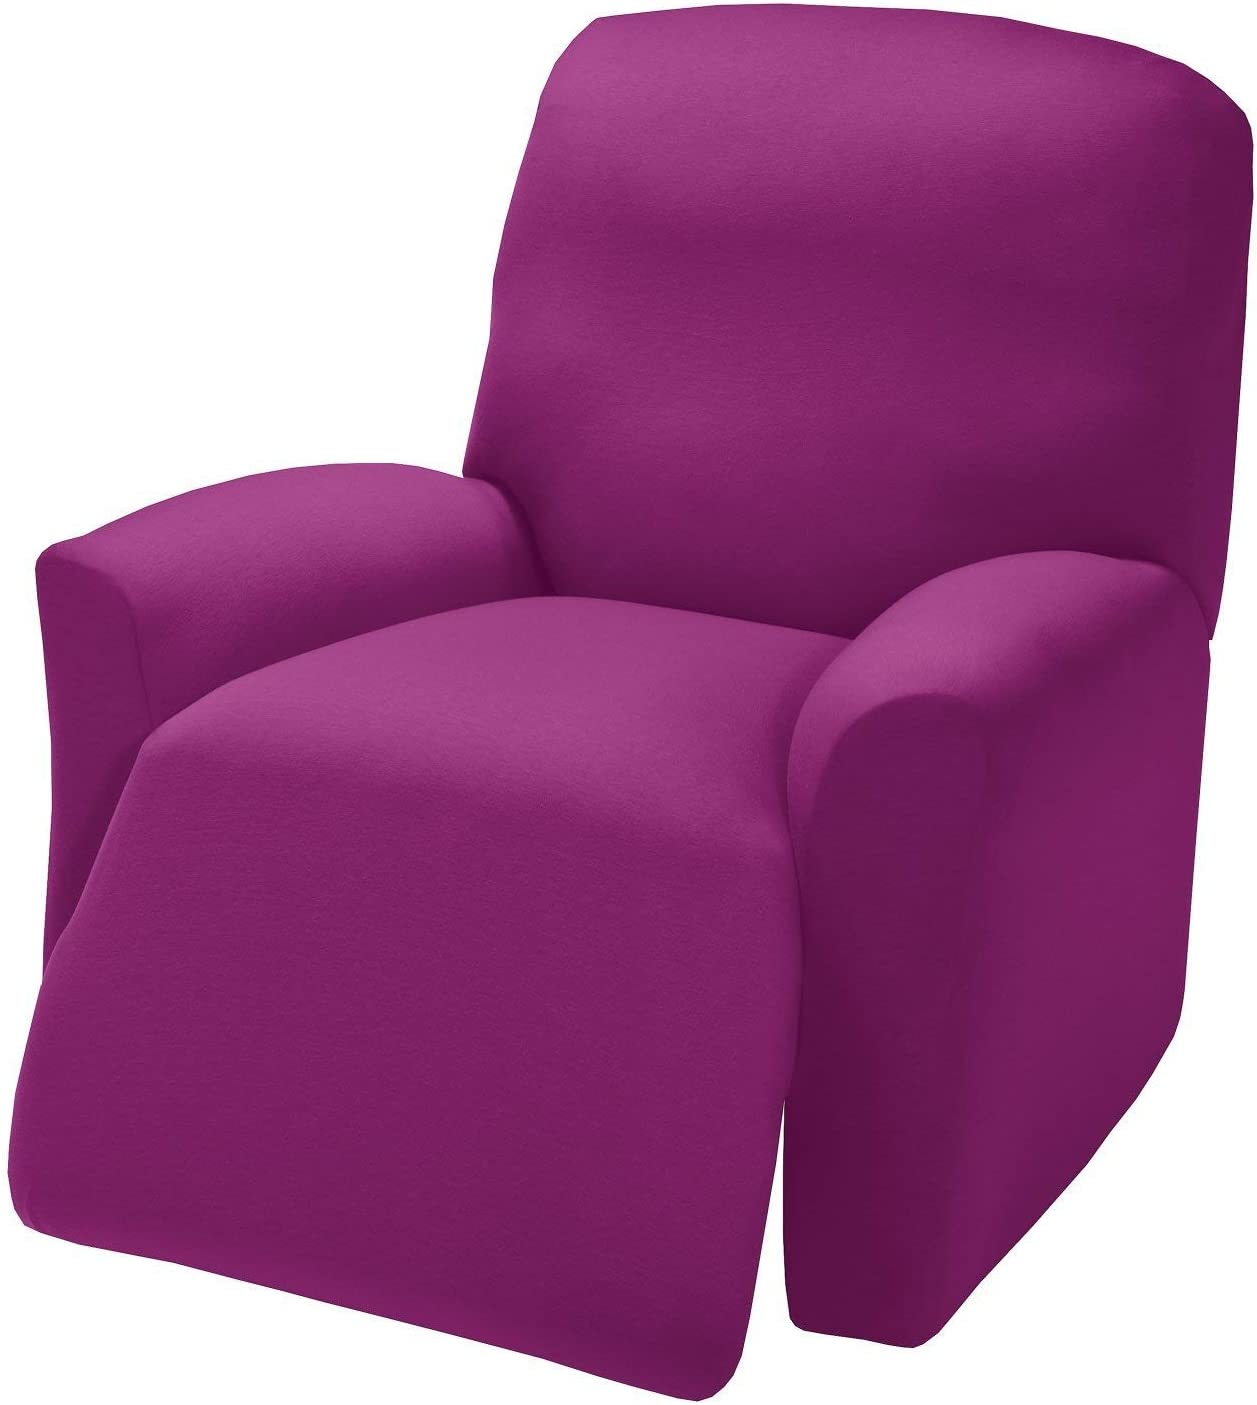 Madison Jersey Recliner Slipcover, Large, Purple